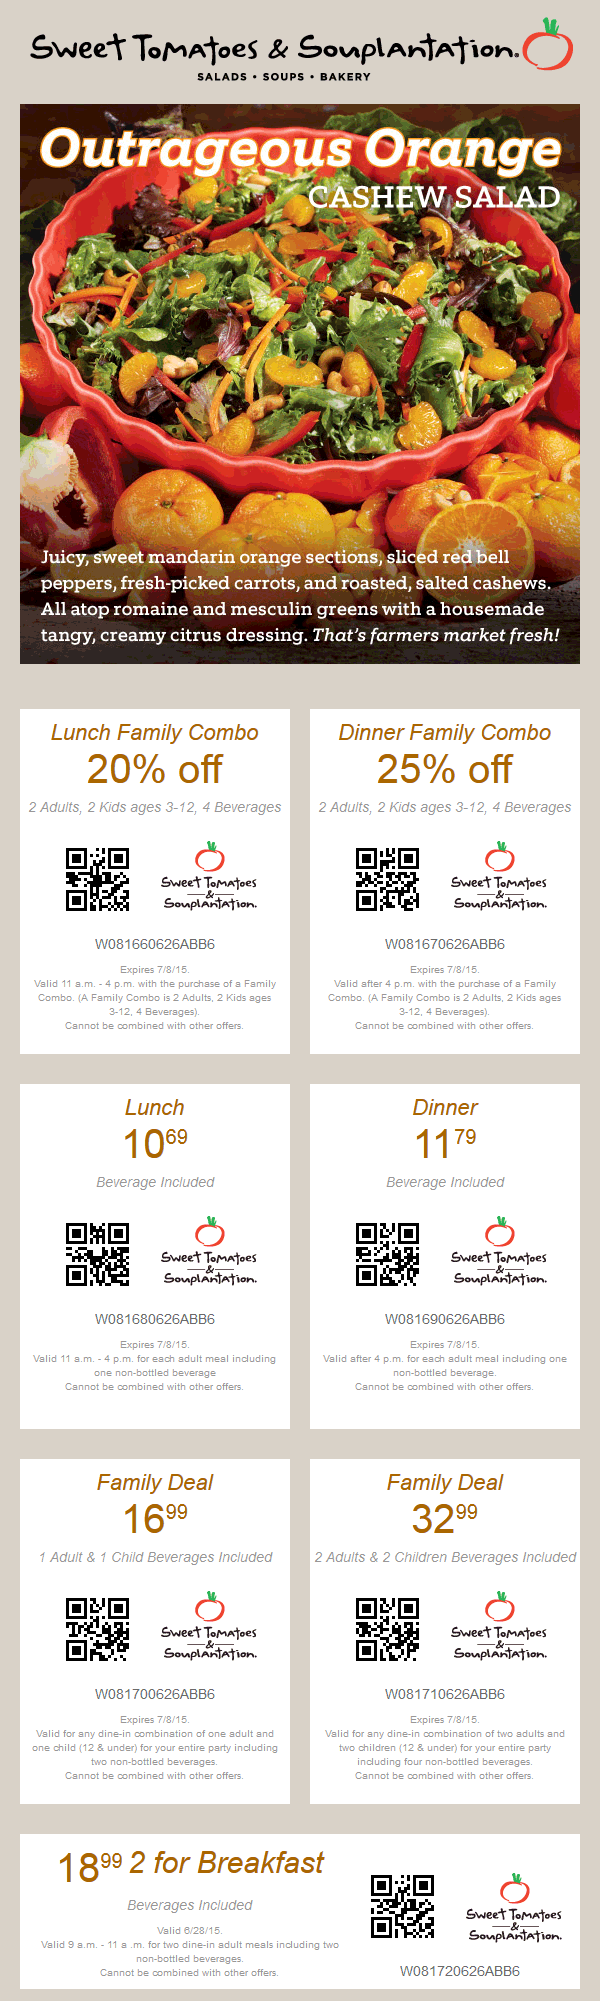 Sweet Tomatoes Coupon October 2016 20% off lunch, 25% off dinner & more at Souplantation & Sweet Tomatoes